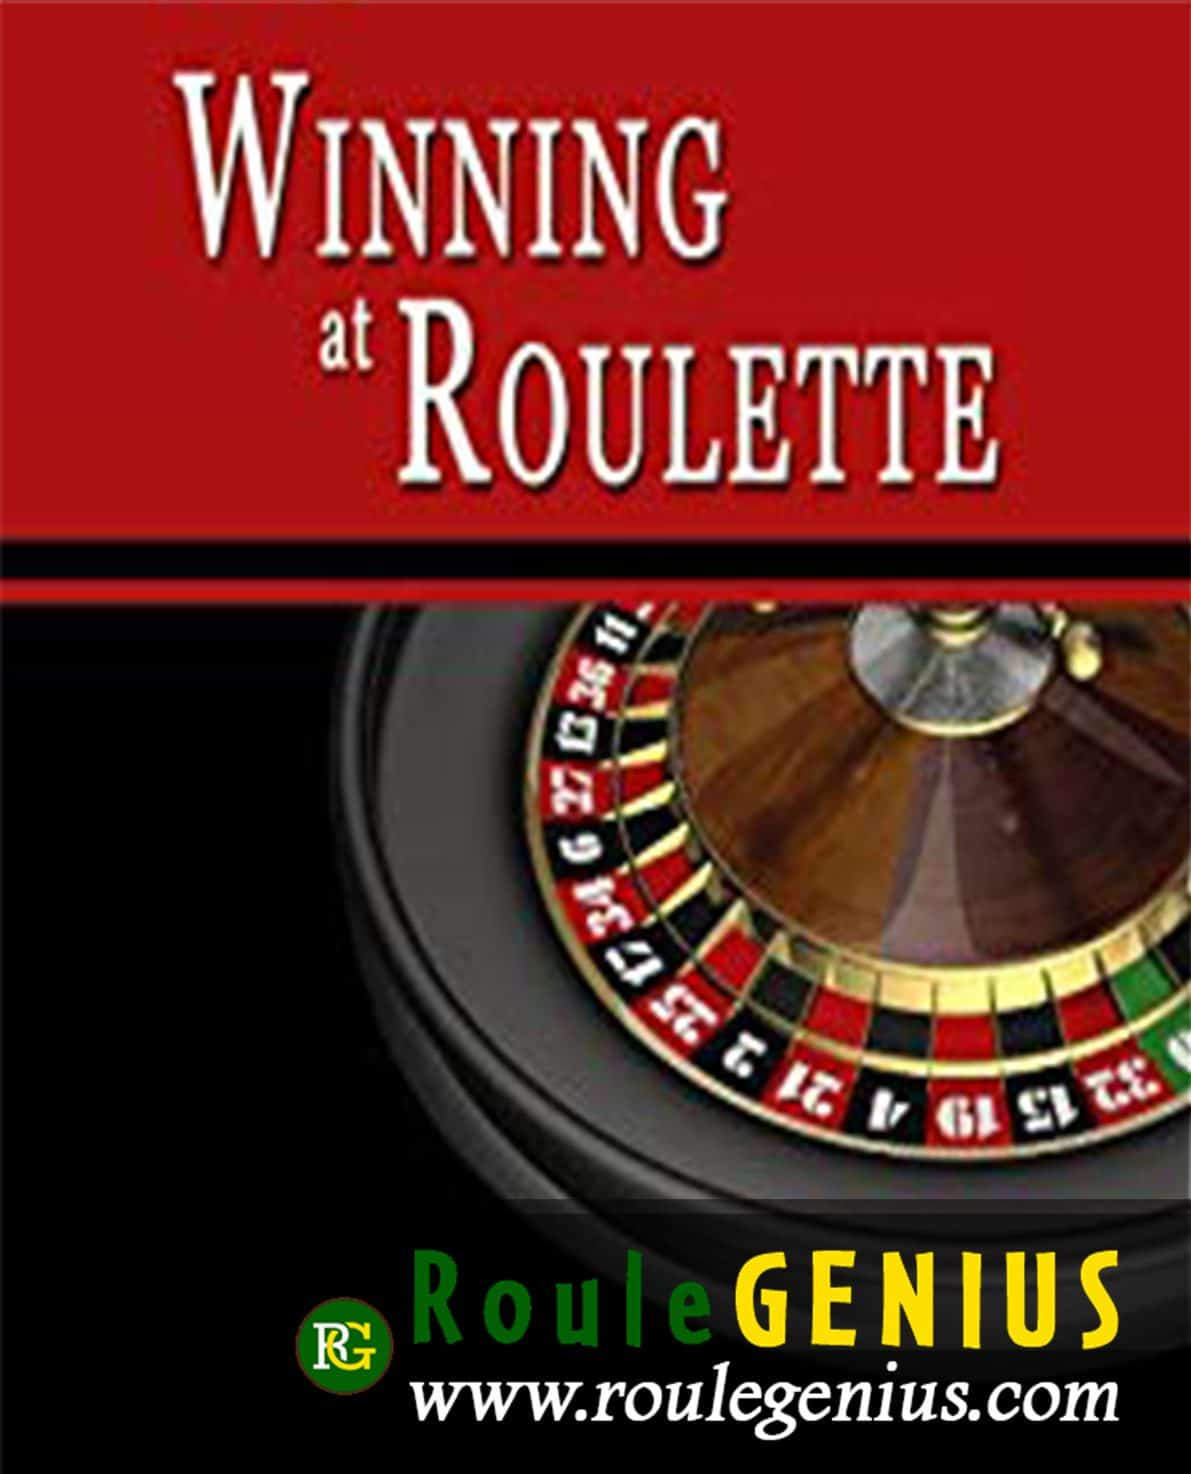 win at roulette book e1568537906611 827x1024 - Believe to facts about roulette